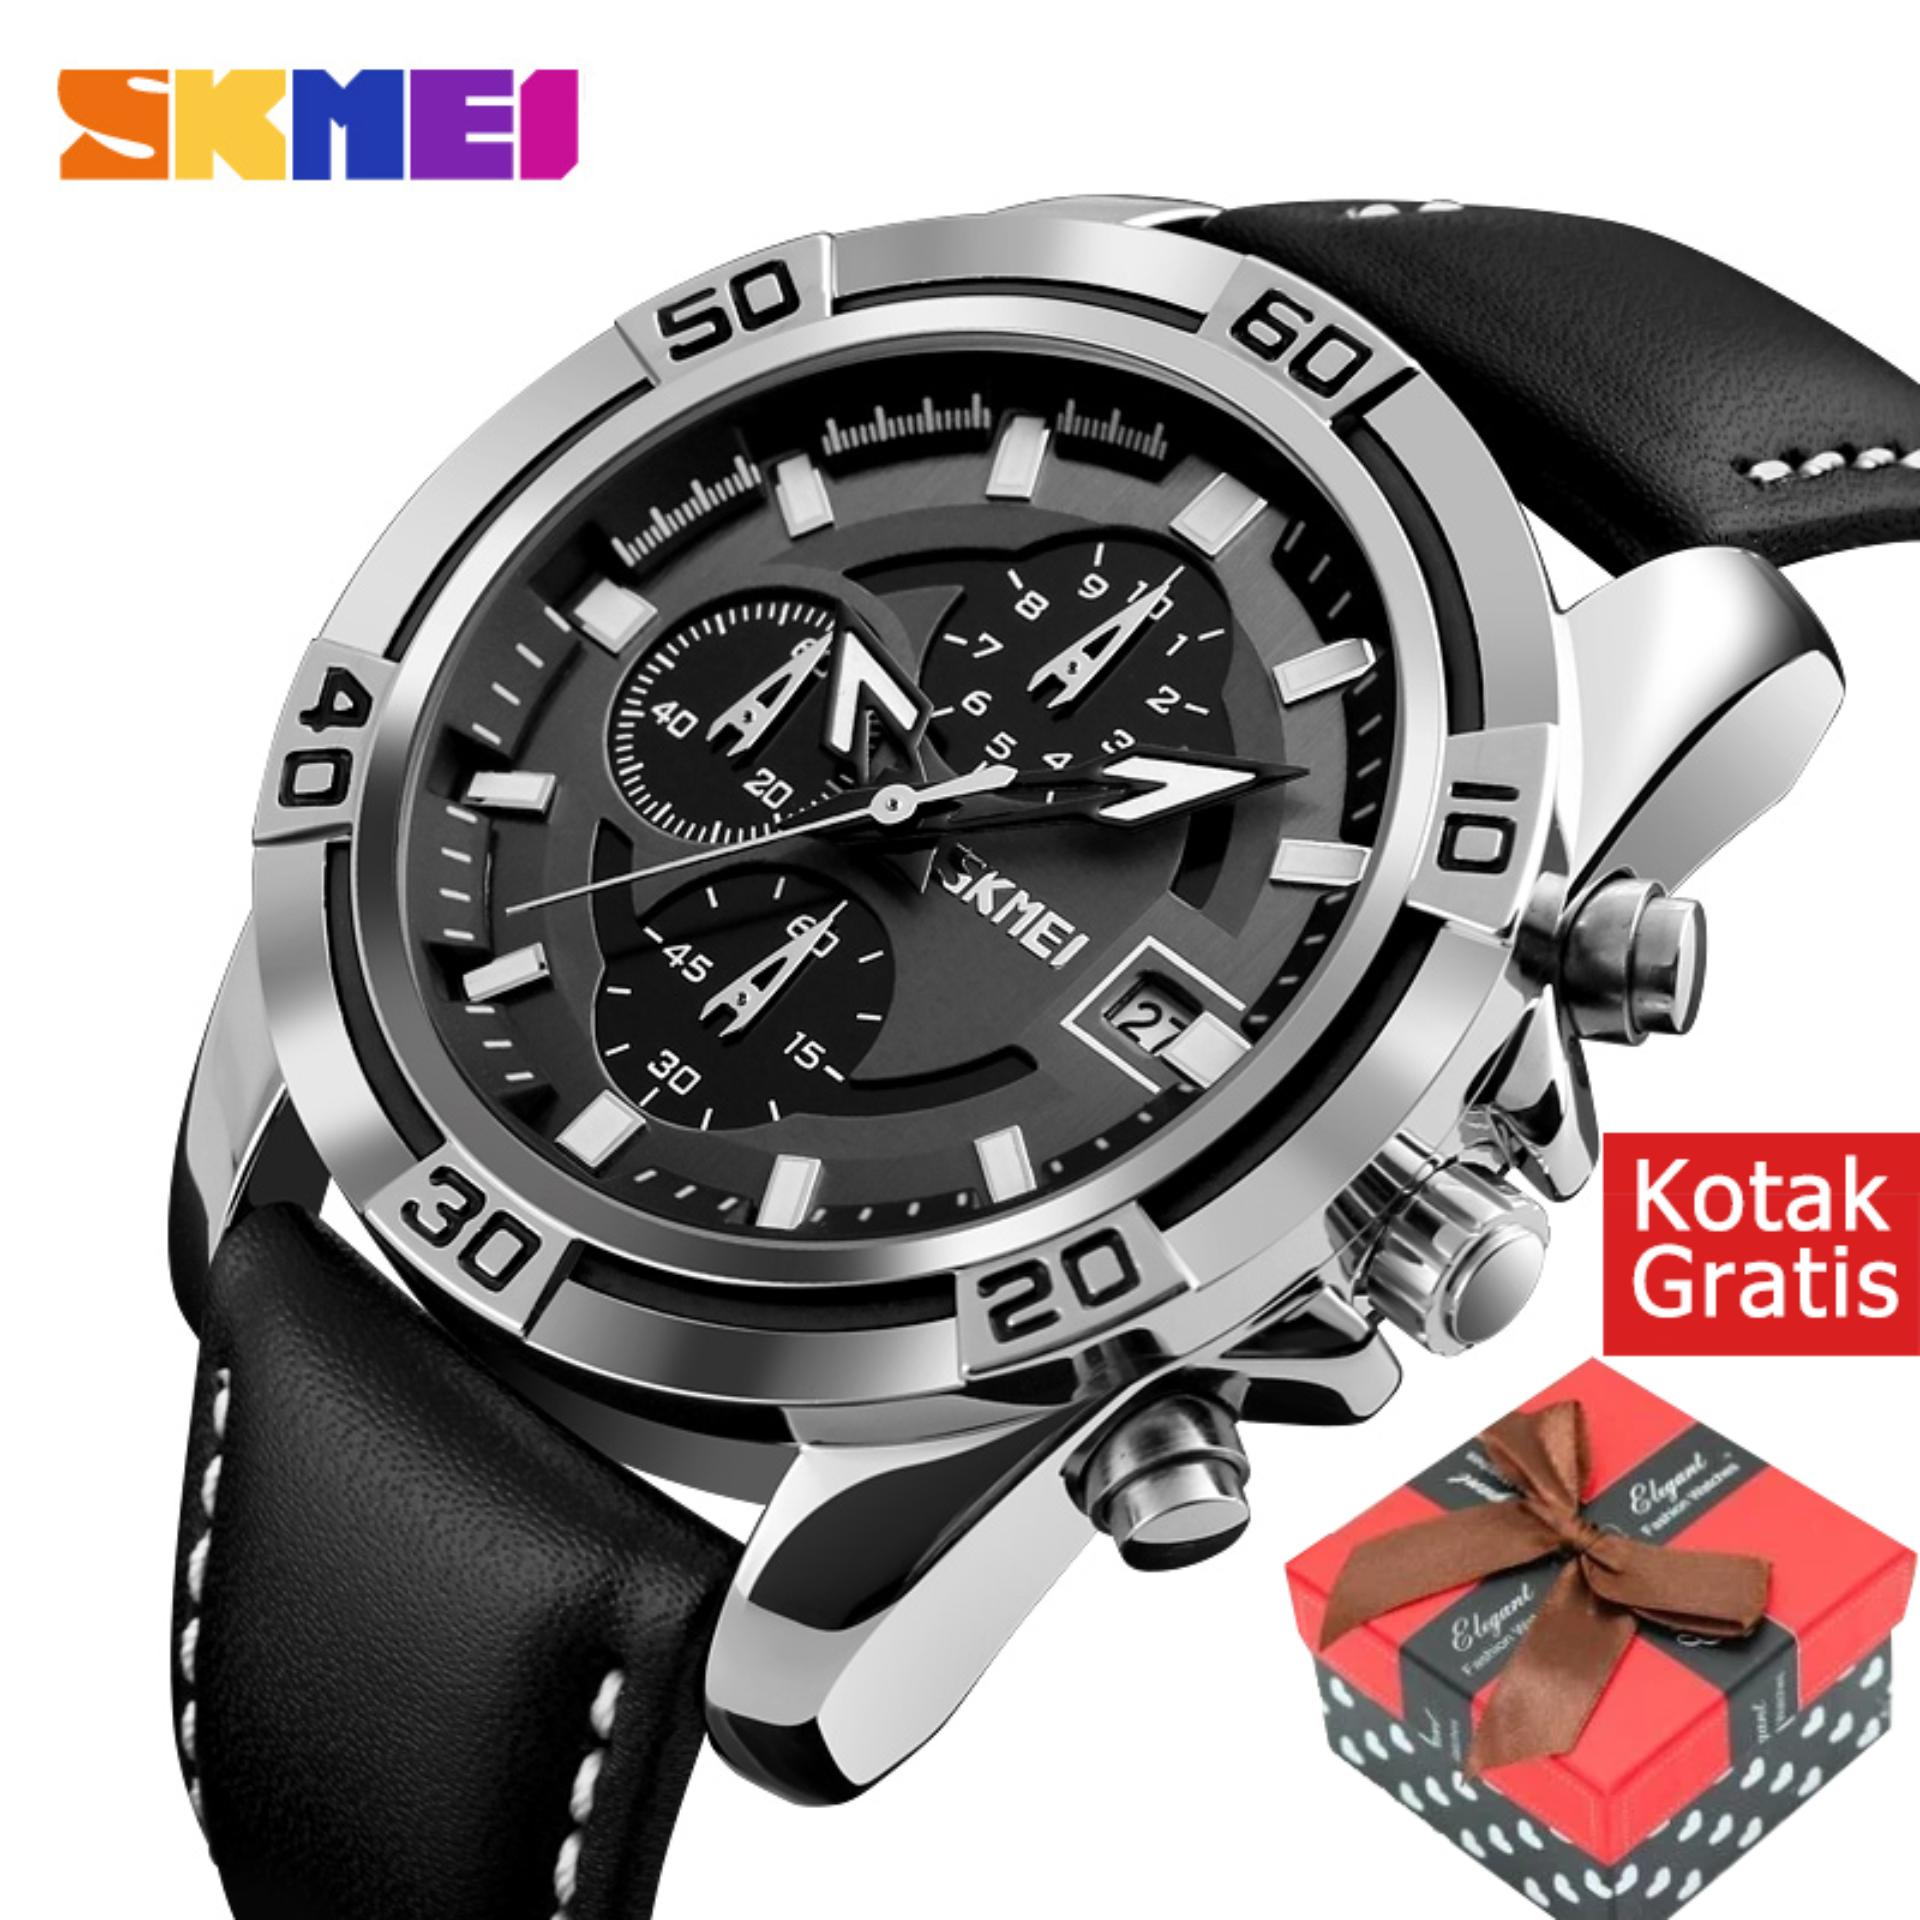 SKMEI 9156 Jam Tangan Men Sport Pria Quartz Watch Lembut Tali kulit Jam Tangan Chronograph Date Waterproof Meal Wristwatches 9156 - intl